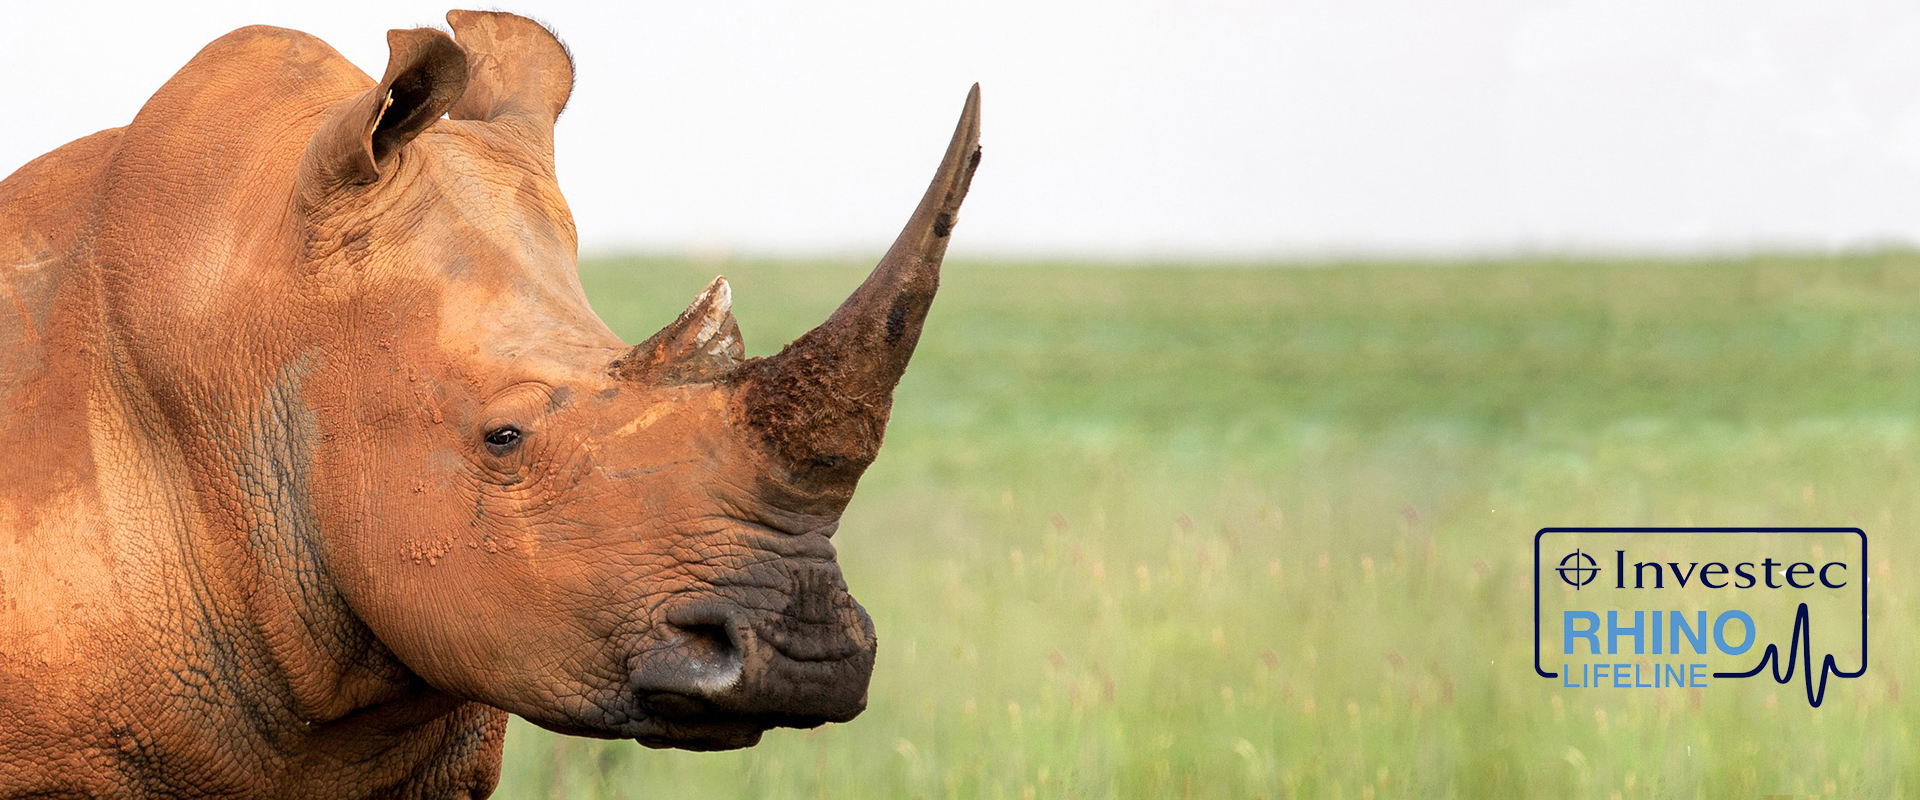 rhino on grasslands